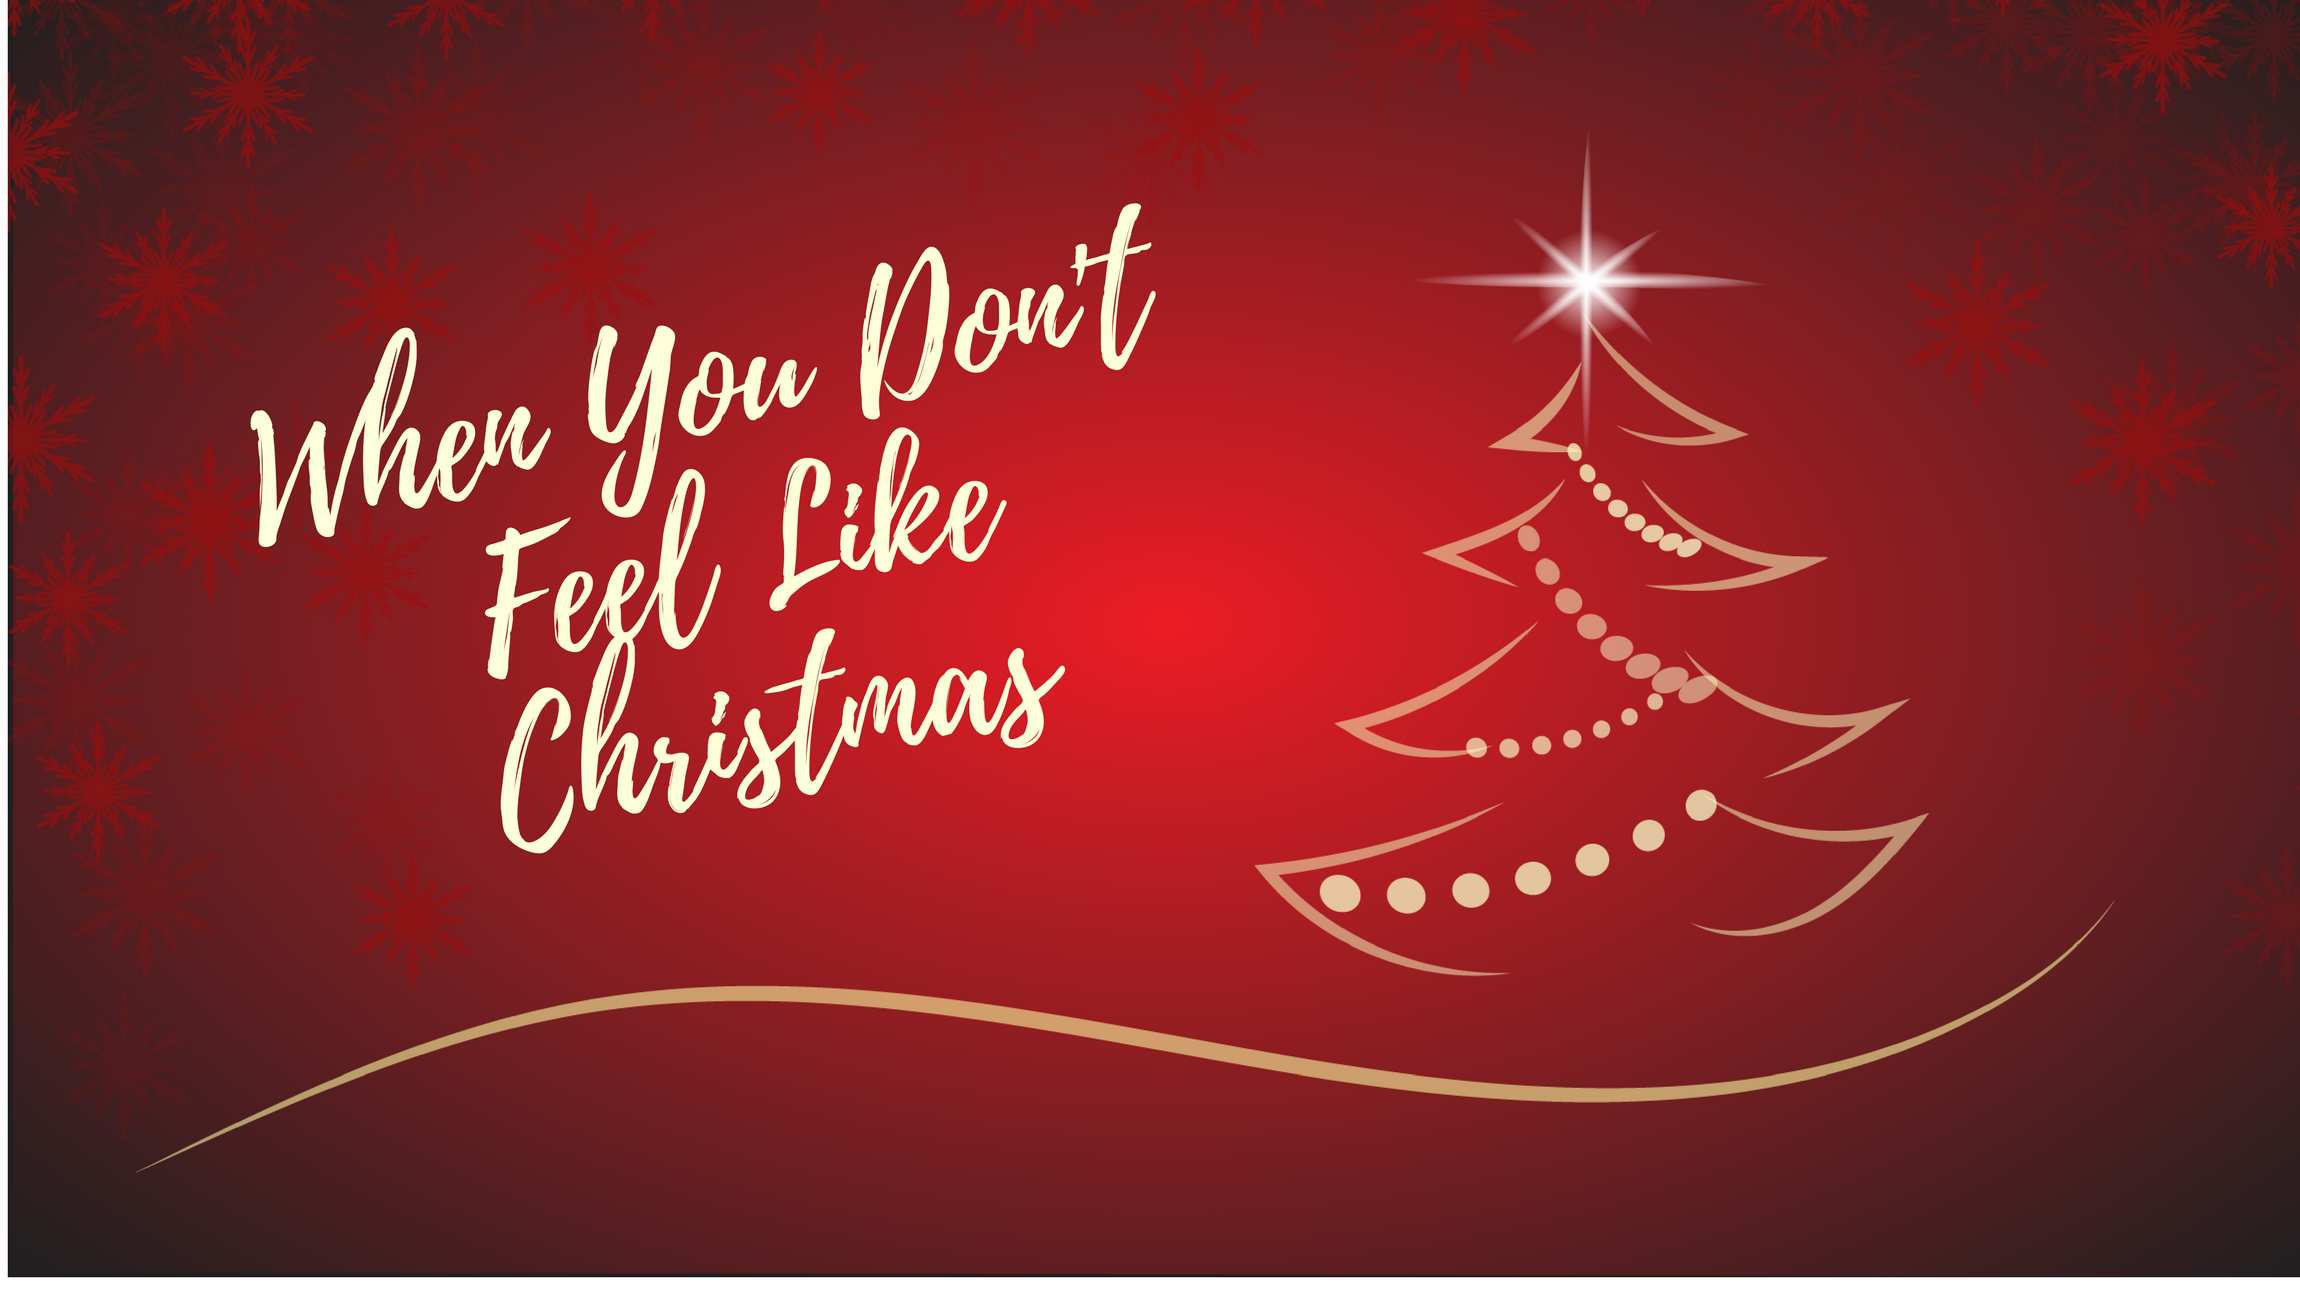 Strategies for Coping with Christmas